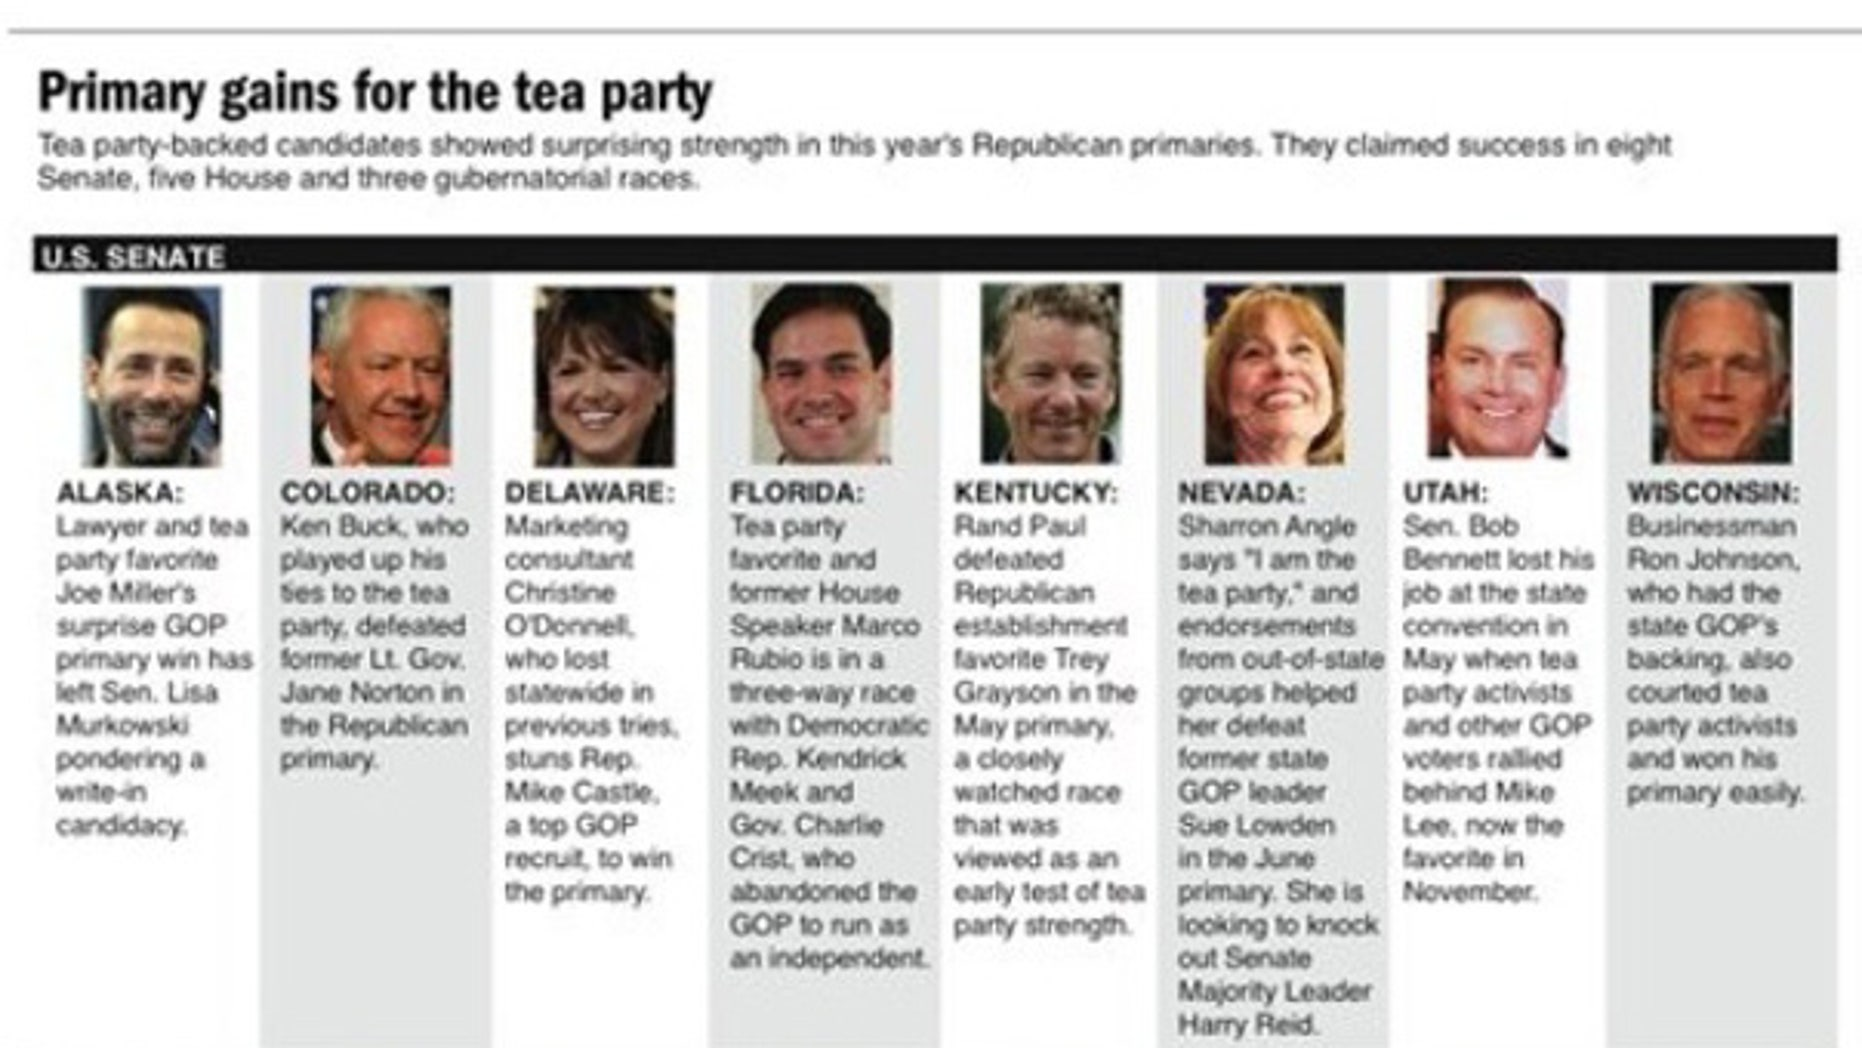 A list of tea party candidates who won primaries